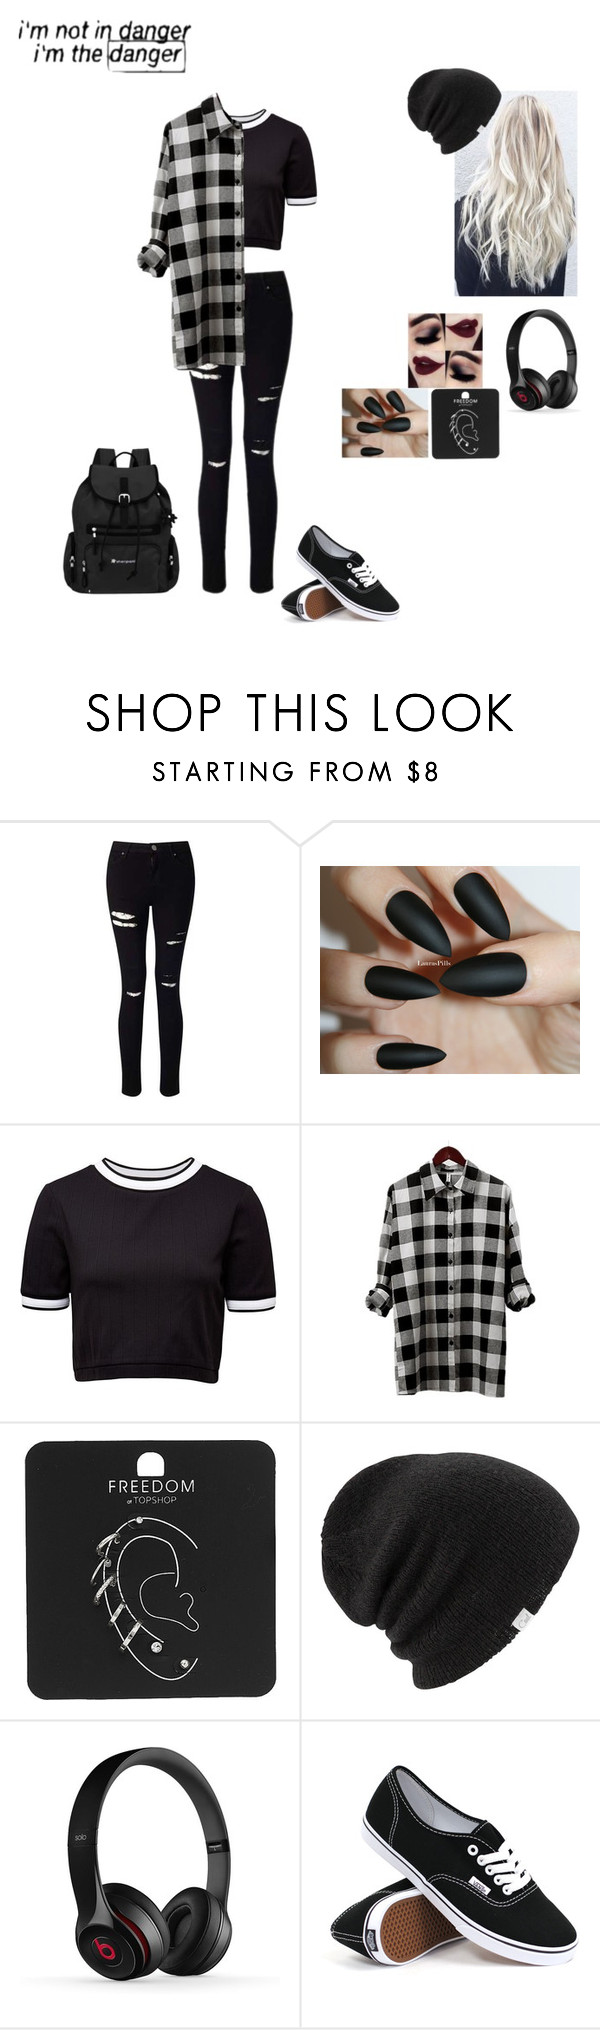 """""""School outfit #14"""" by weber-350 on Polyvore featuring Miss Selfridge, Disney, French Connection, Topshop, Coal, Vans, Sherpani, black and grey"""